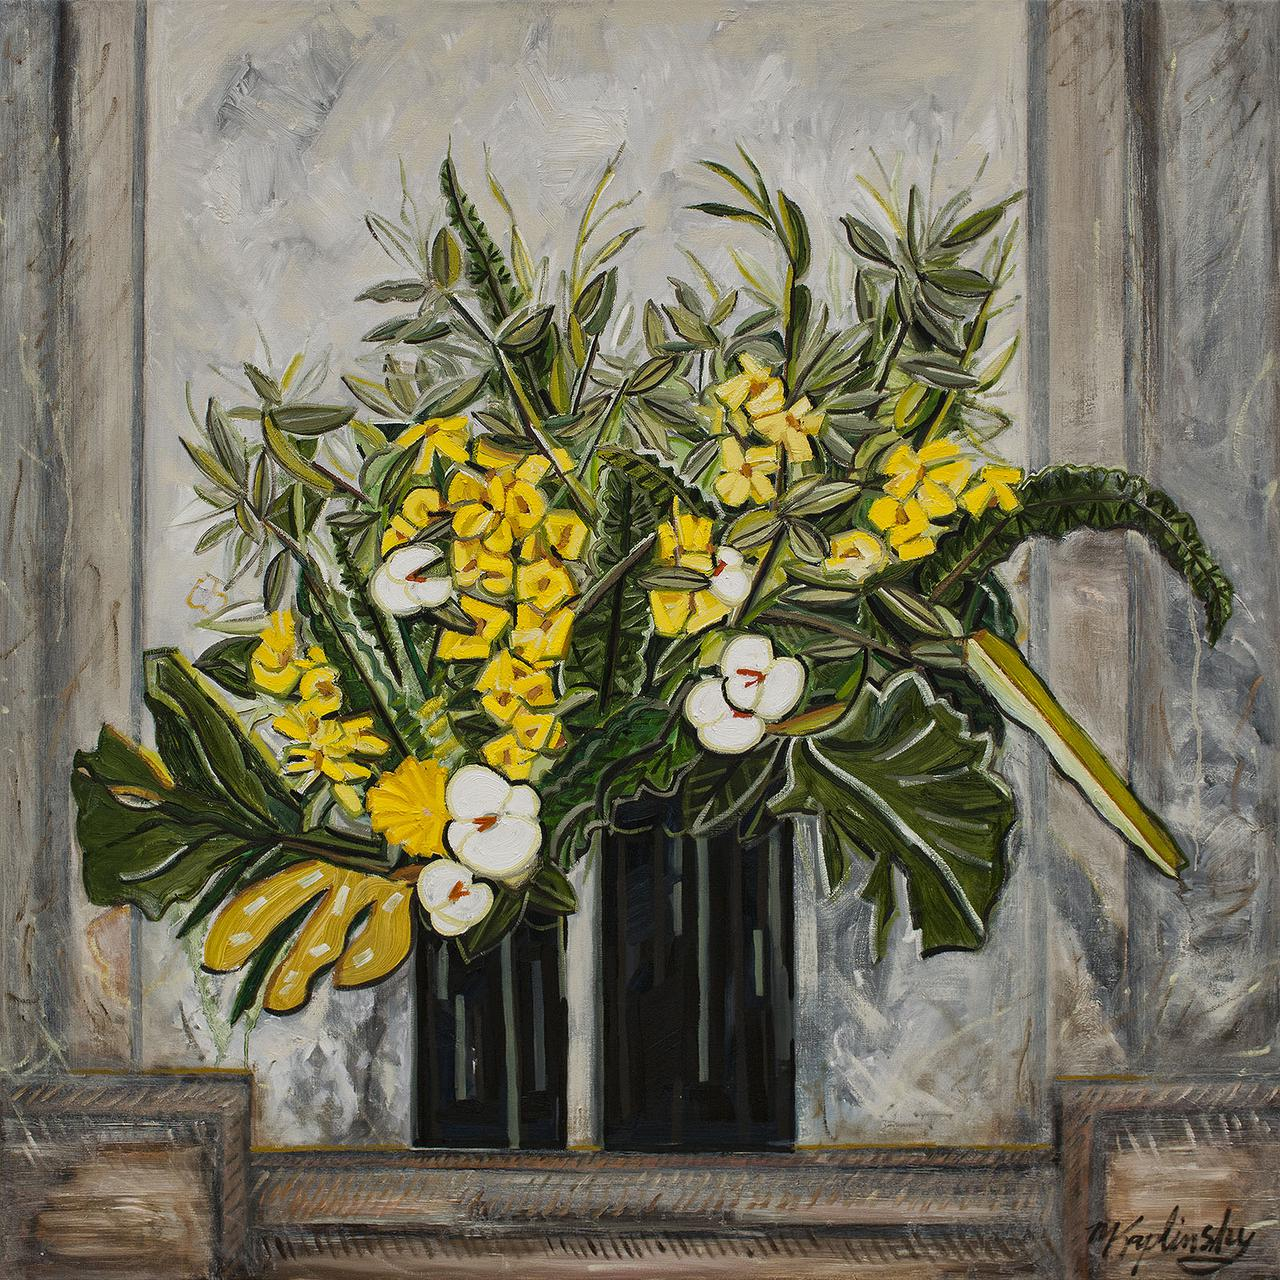 portfolio/Hotel Lobby Arrangement - 48x48 oil on canvas by Matt Kaplinsky.jpg